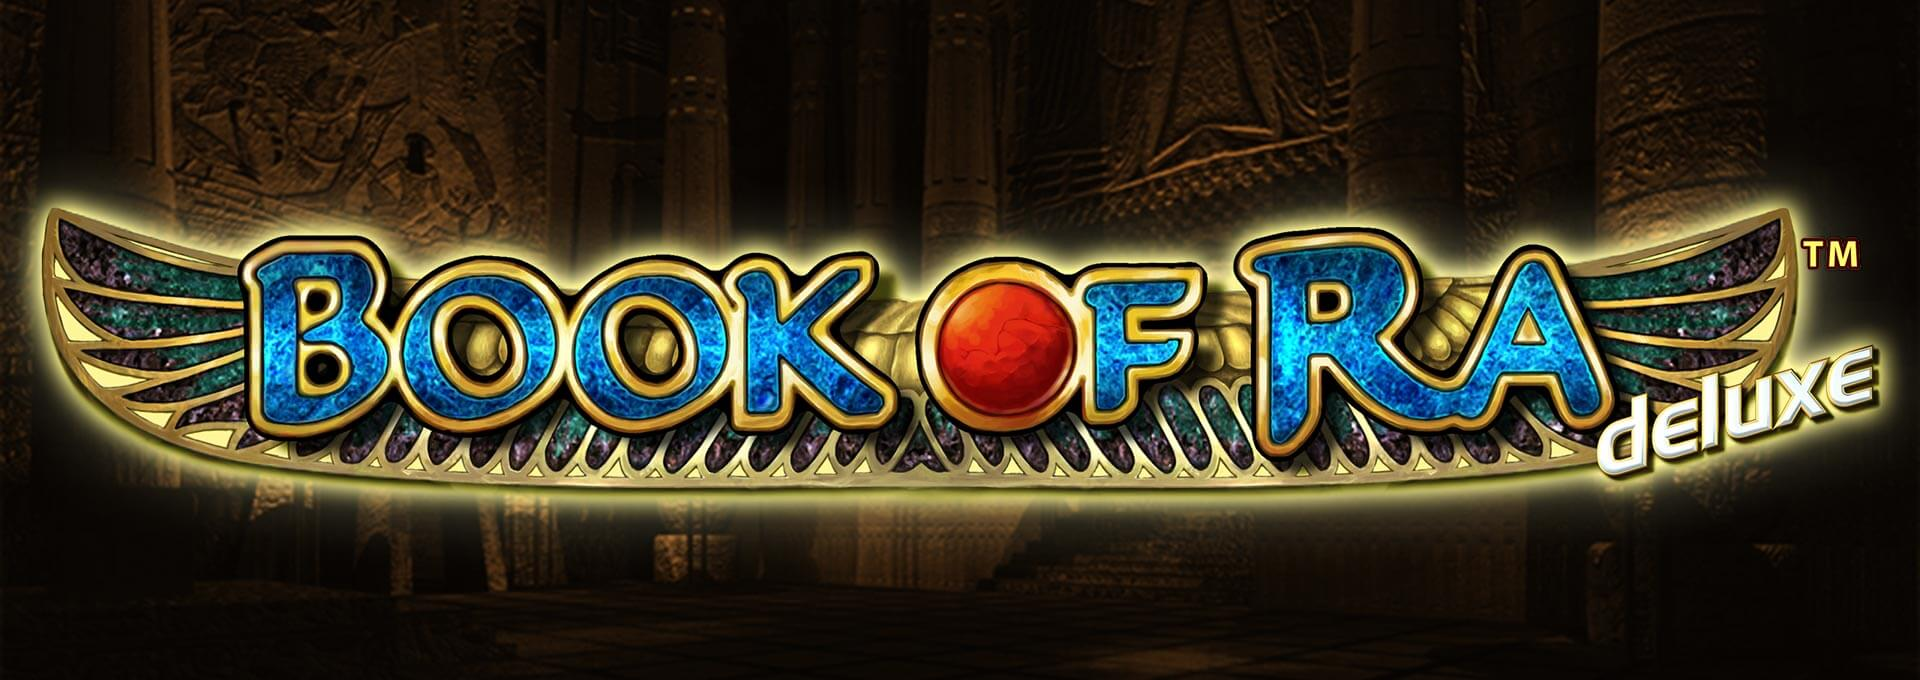 blackjack online casino the book of ra